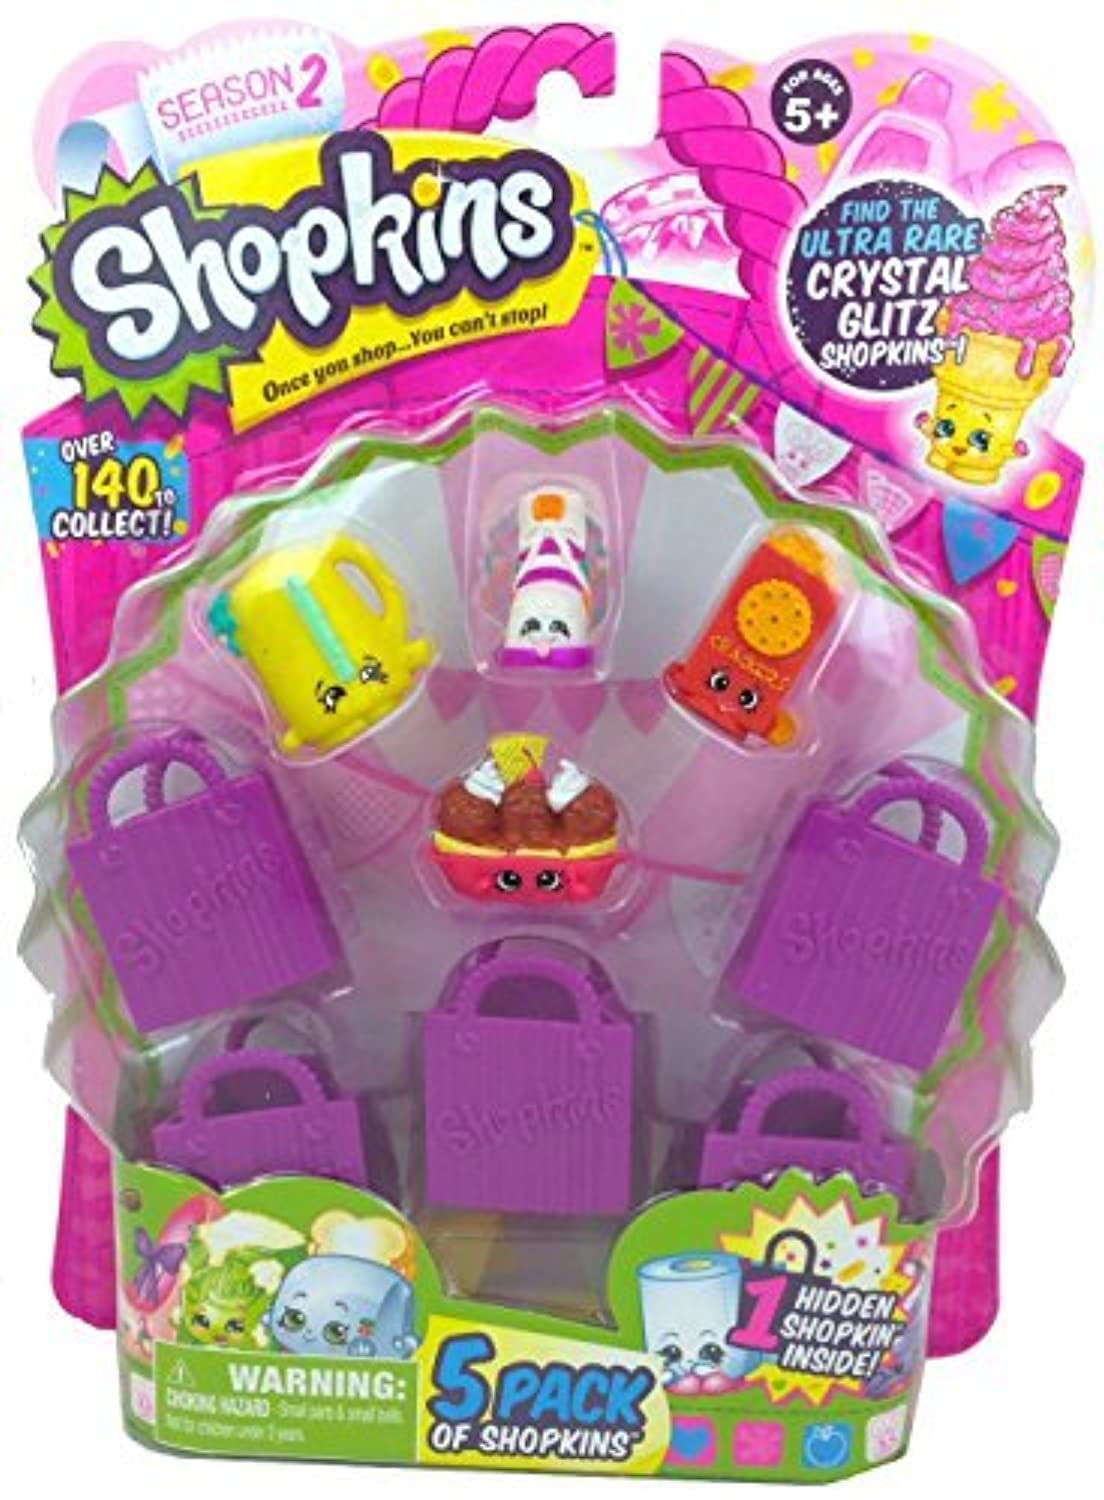 Shopkins Season 2 (5 Pack) Set 19 by Moose Toys [並行輸入品]